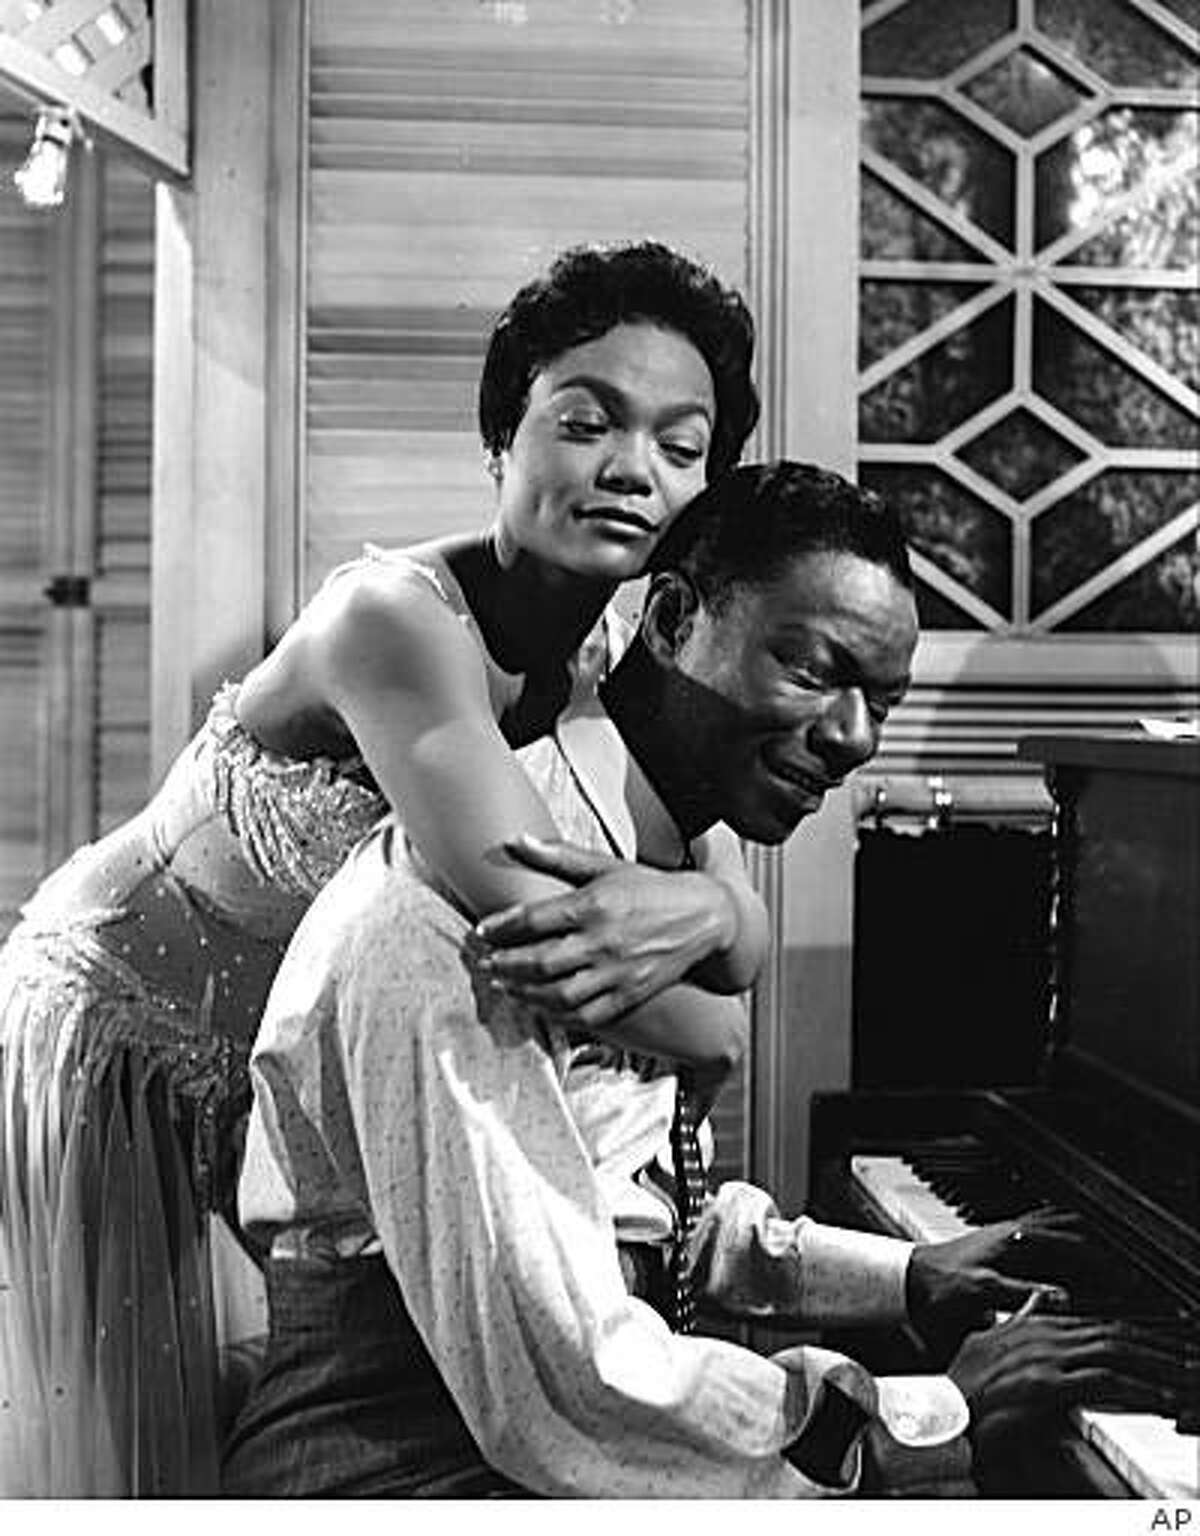 """In this undated file photo, Eartha Kitt hugs Nat King Cole, playing the piano in the role of W.C. Handy, in a scene from the 1958 movie """"St. Louis Blues."""" Kitt, a sultry singer, dancer and actress who rose from South Carolina cotton fields to become an international symbol of elegance and sensuality, died Thursday Dec. 25, 2008 of colon cancer. She was 81."""